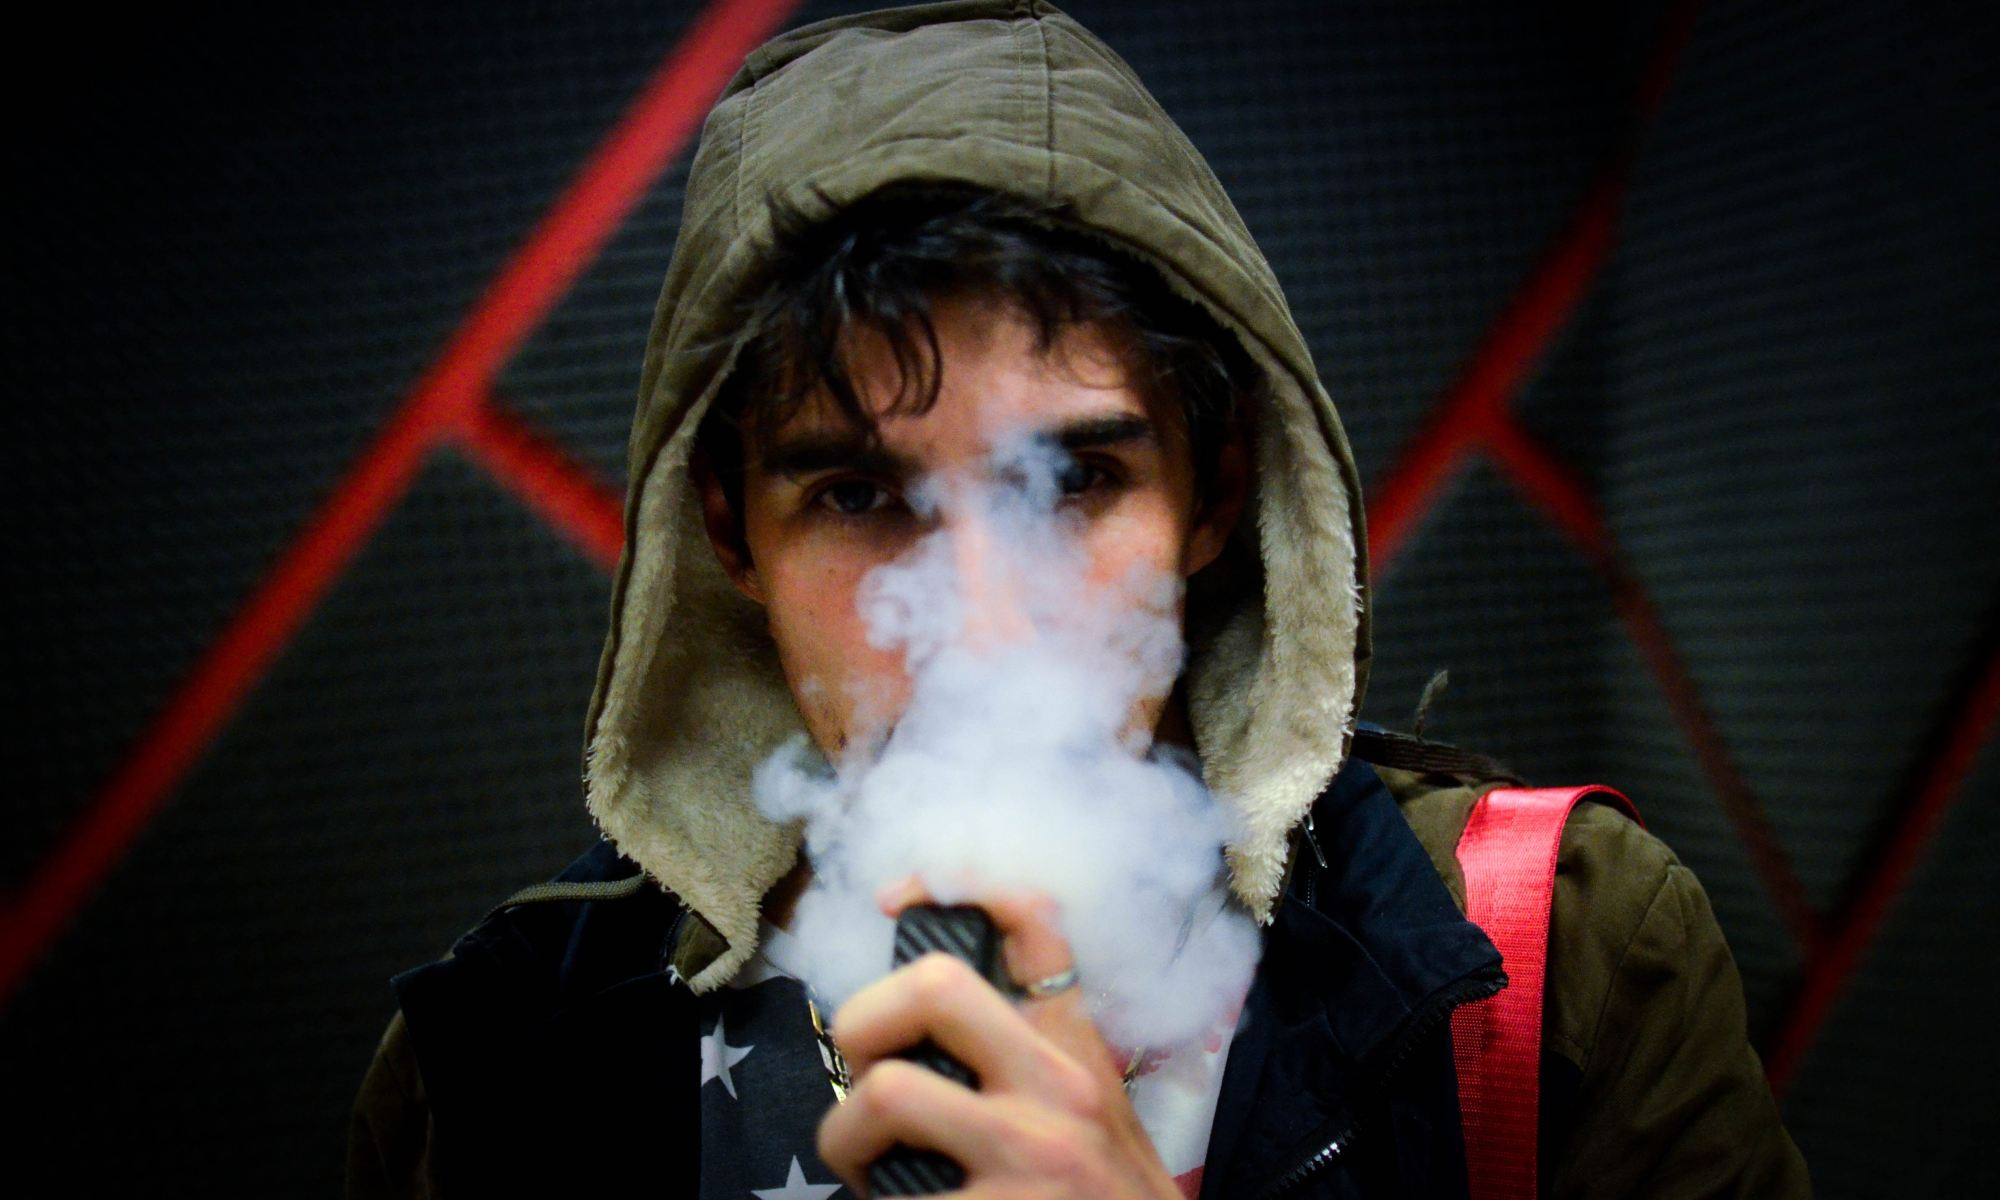 Young man in hoodie vaping a nicotine-containing product